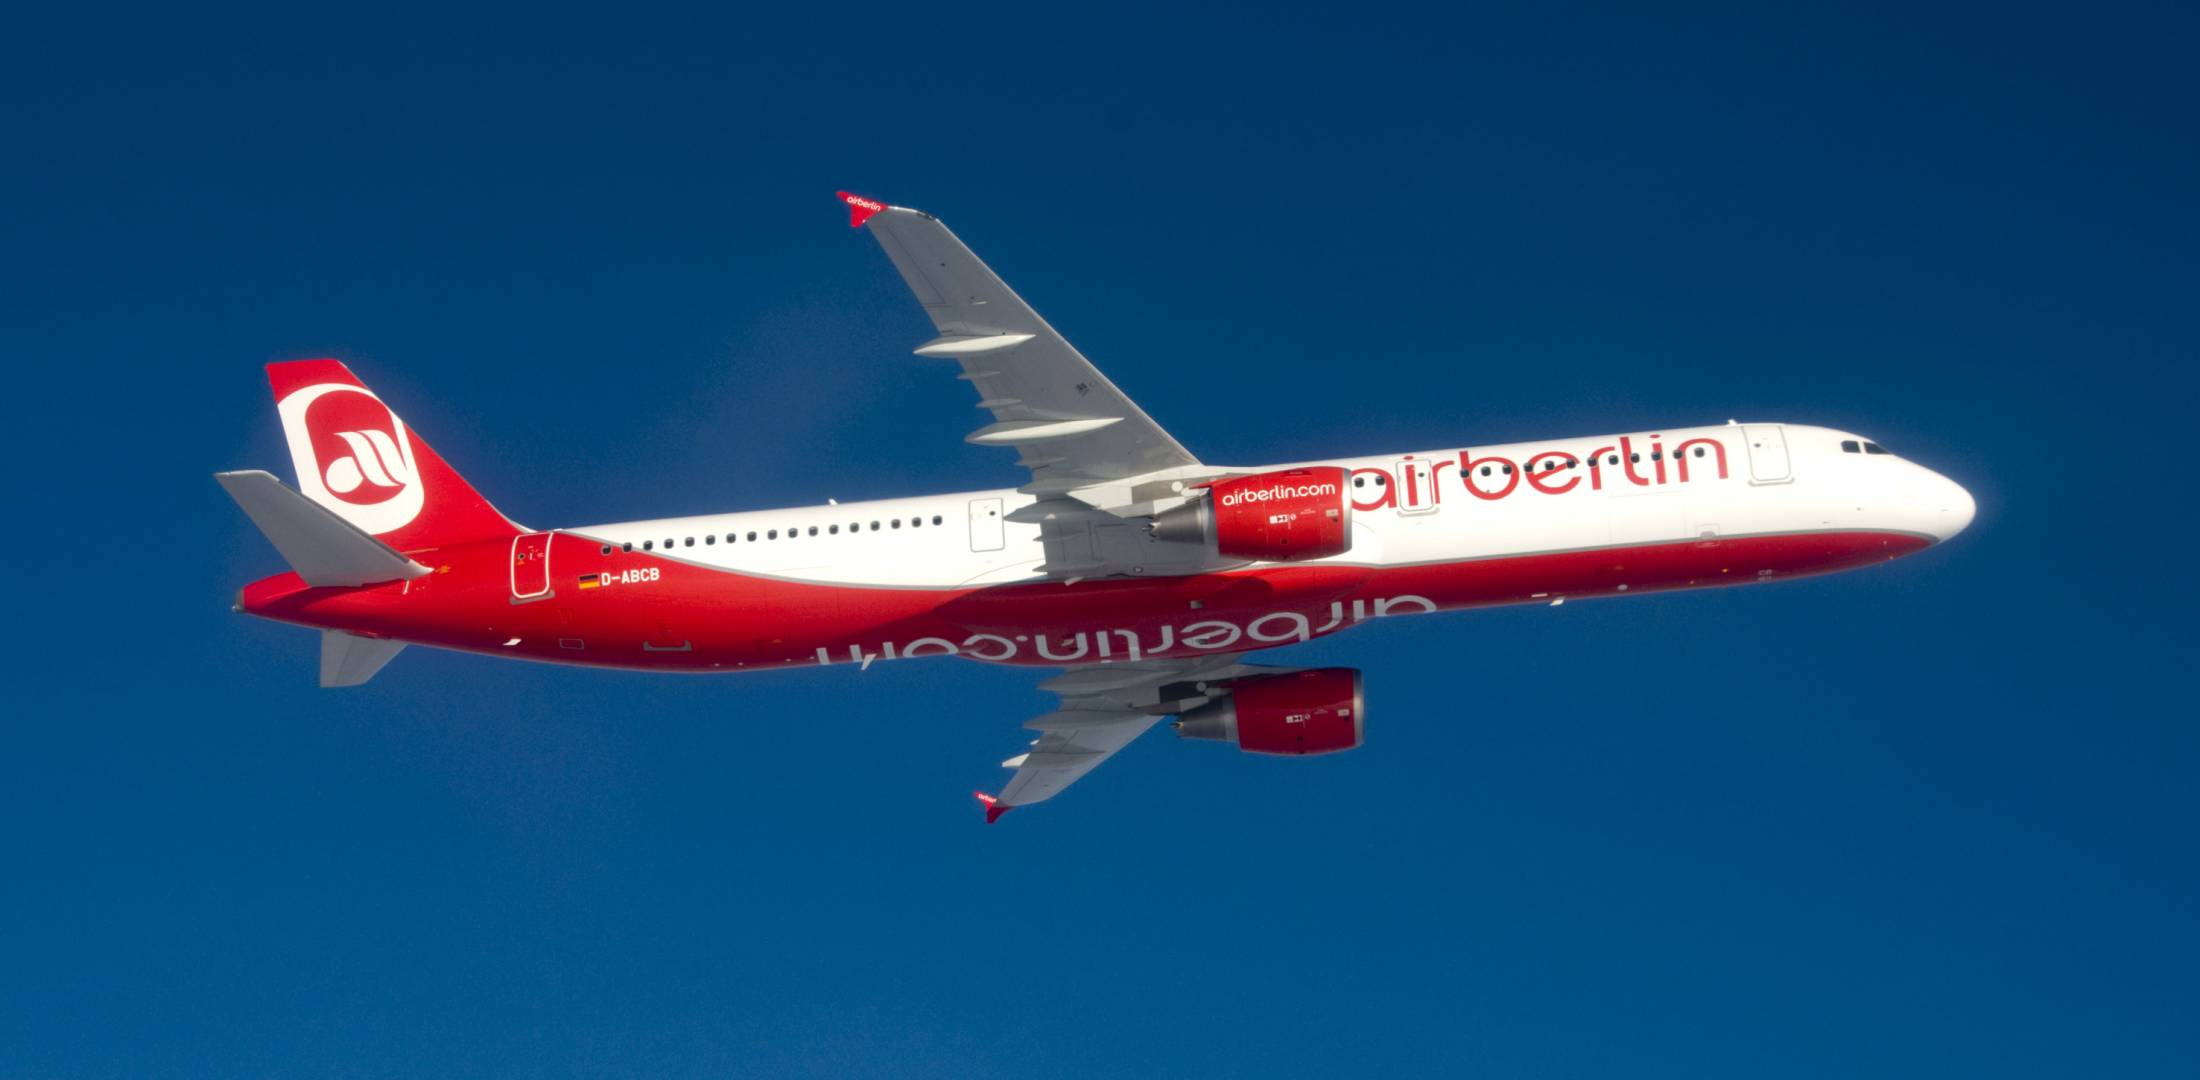 airberlin Airbus A321-200